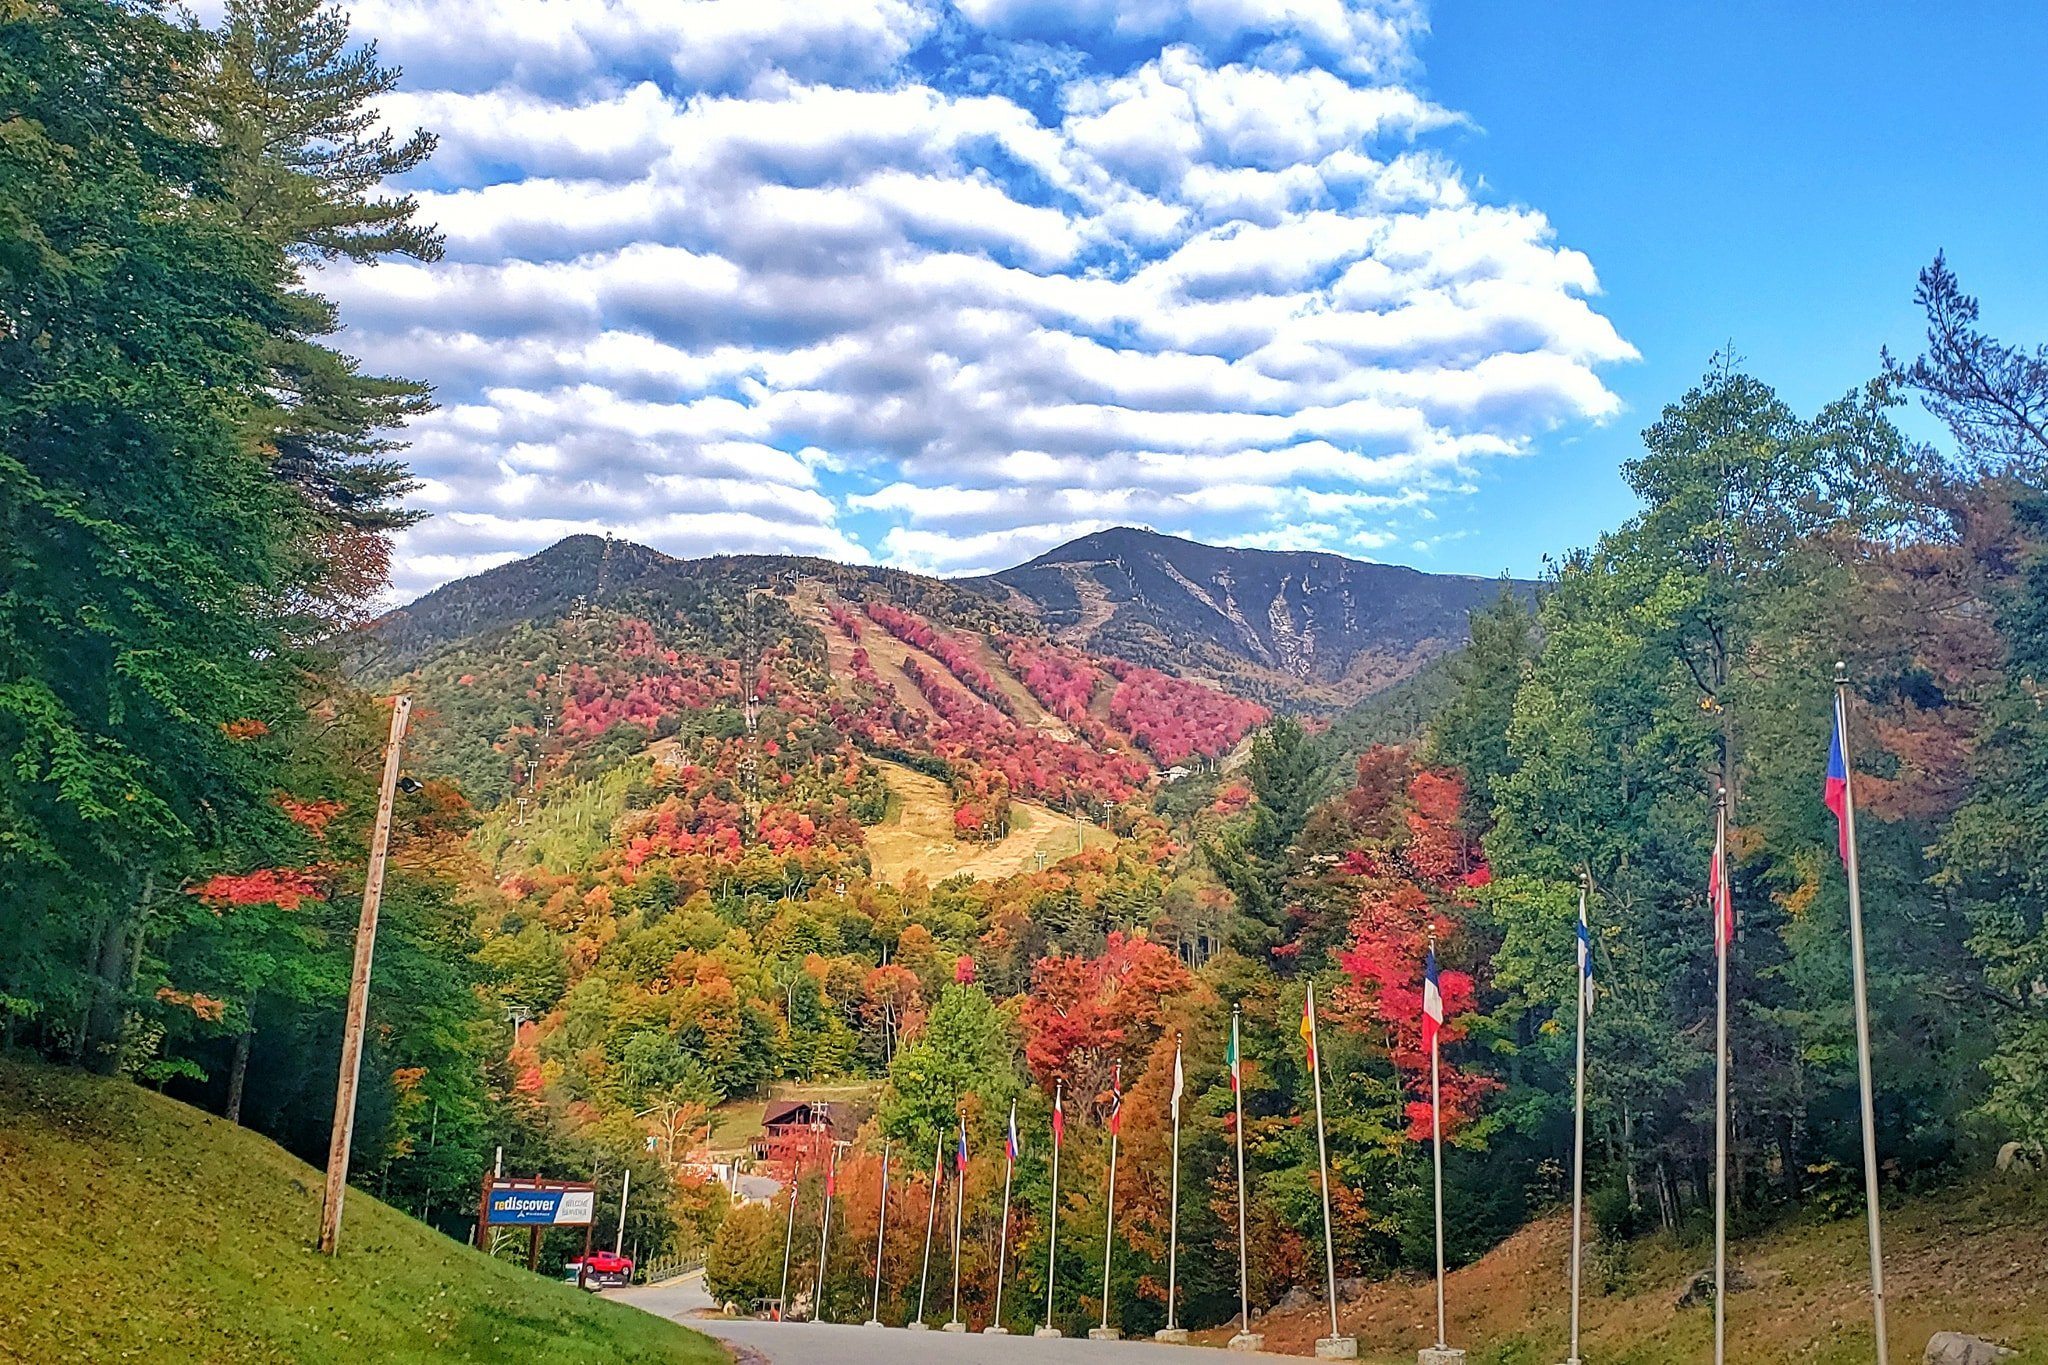 View of mountain from road where trees are all the colors of fall.